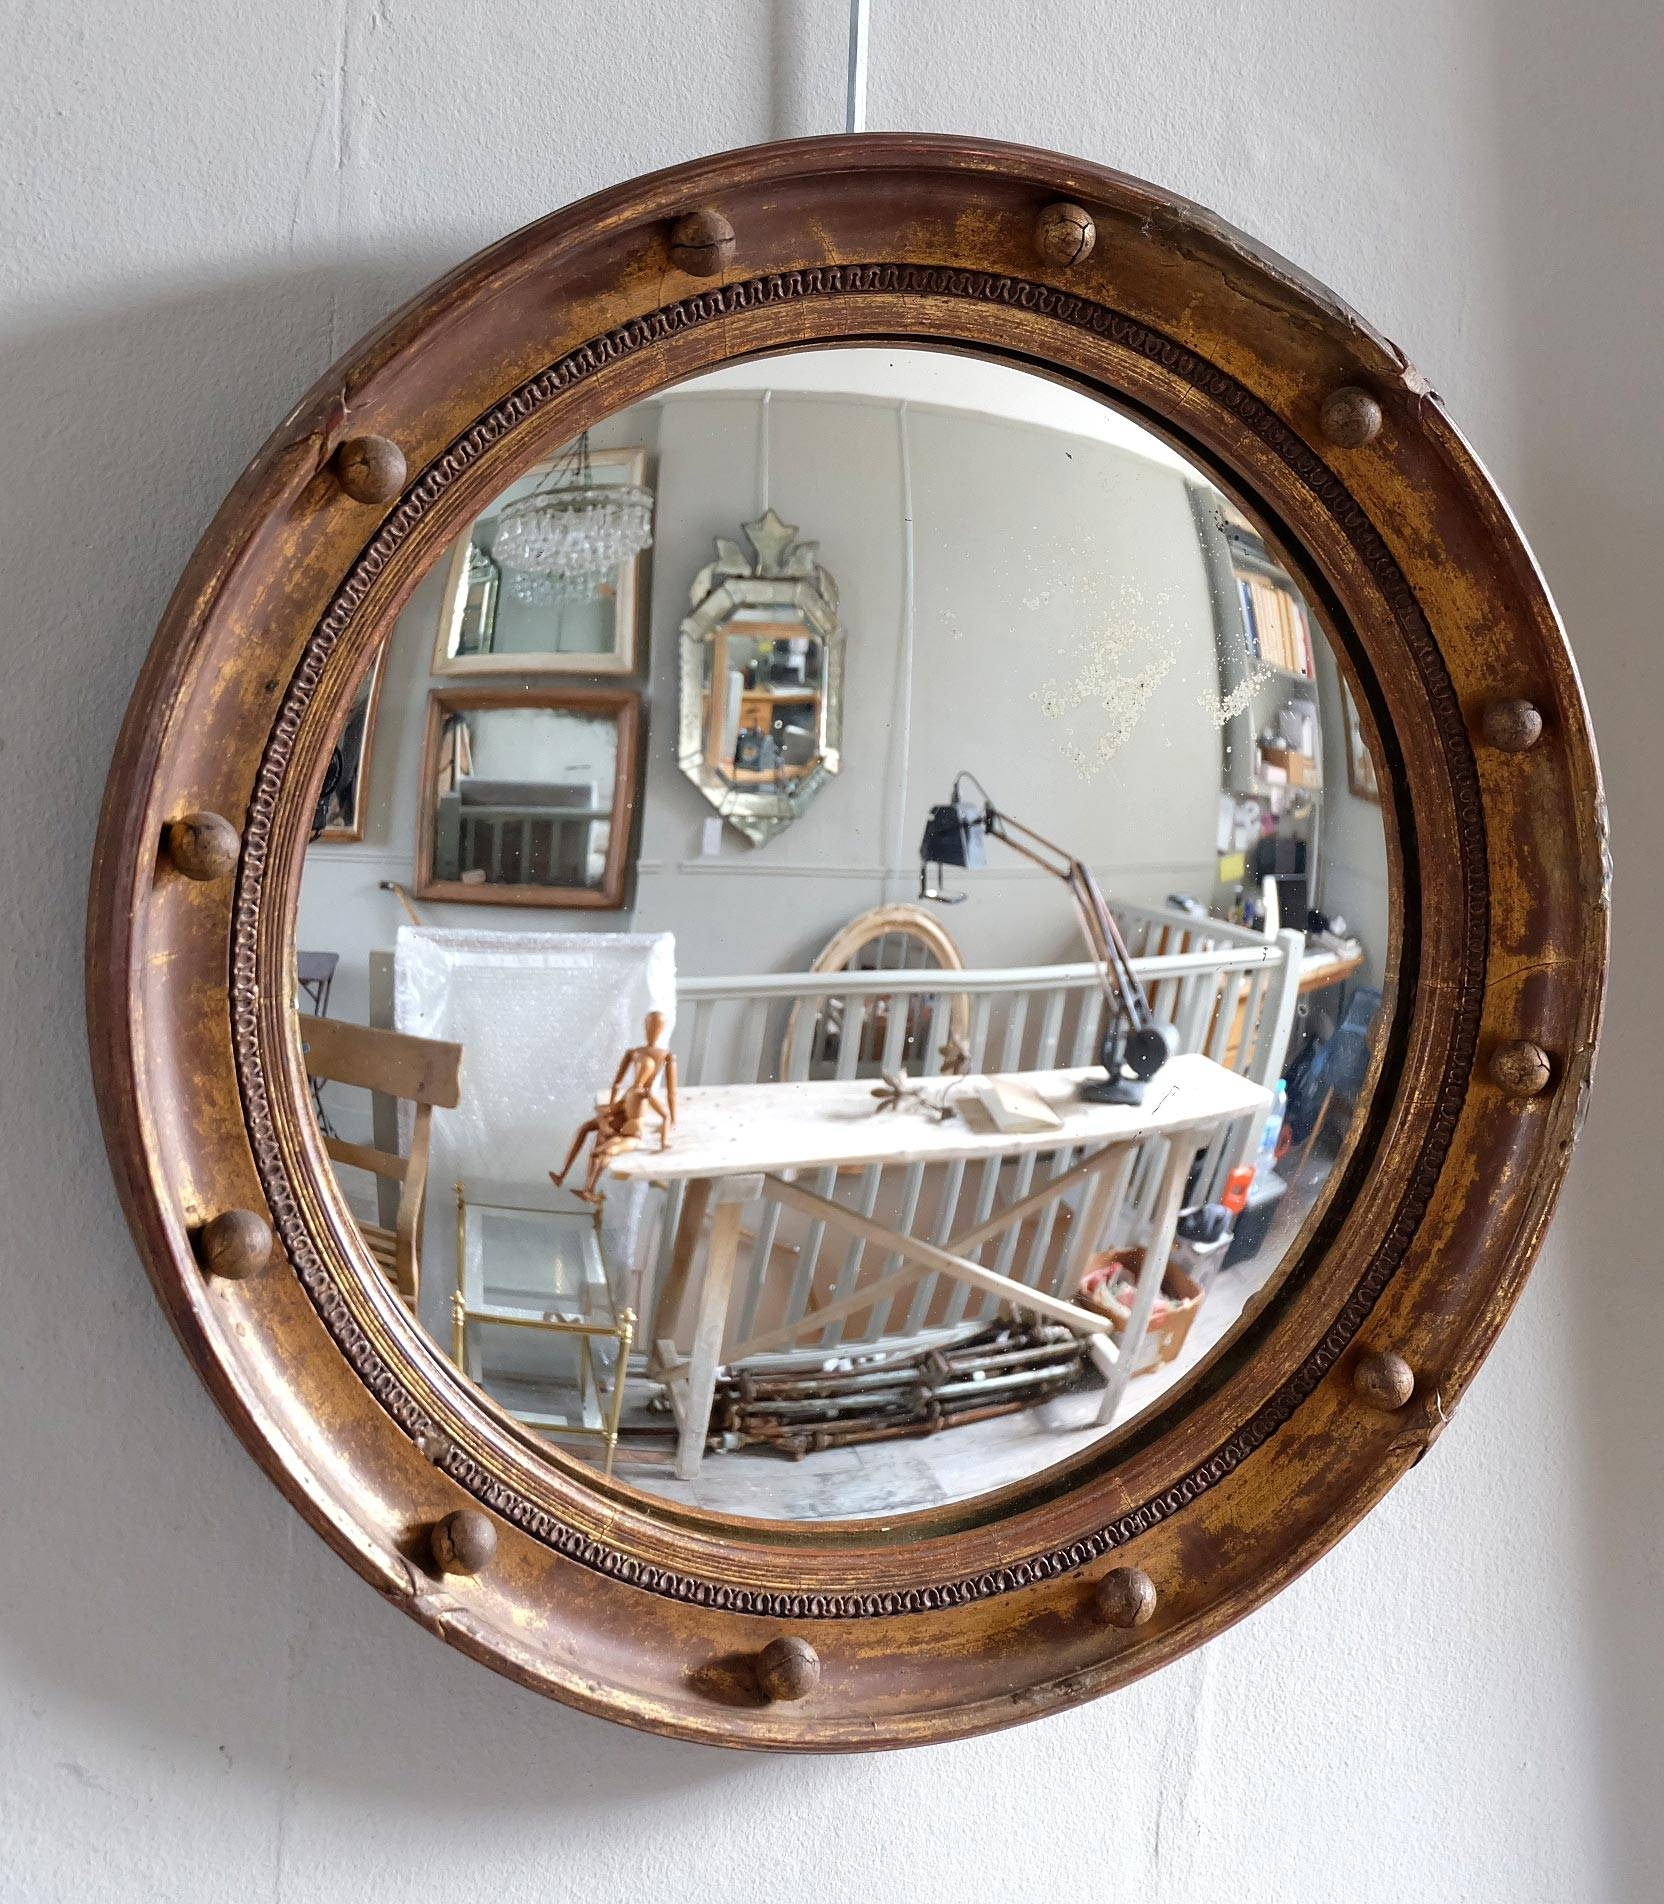 Antique Round Convex Mirror › Puckhaber Decorative Antiques pertaining to Round Convex Mirrors (Image 4 of 25)